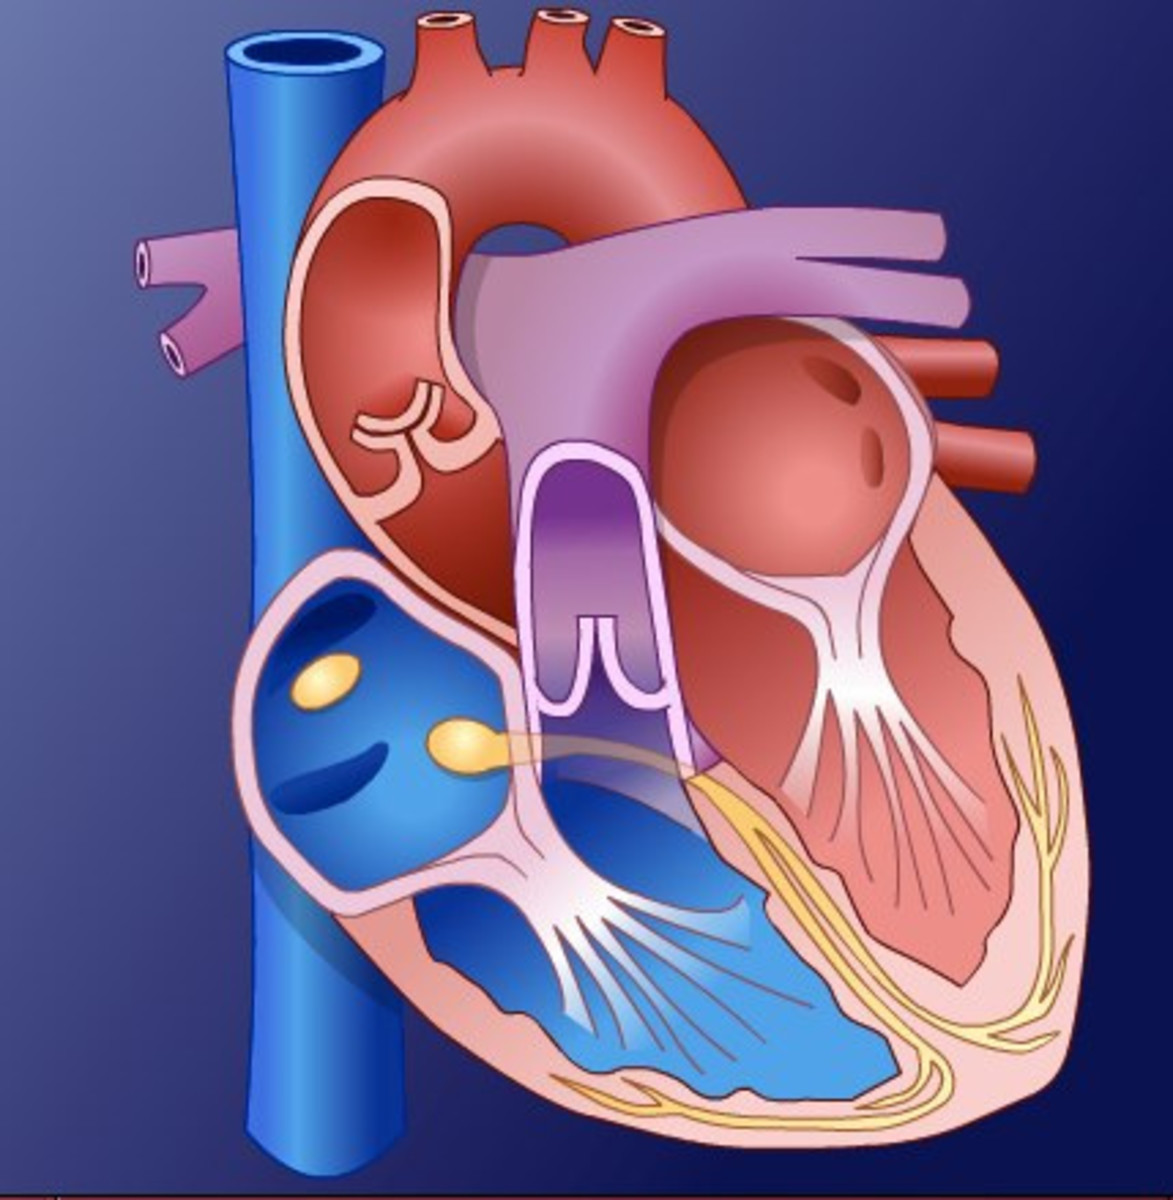 Easy Anatomy: Understanding How the Human Heart Works